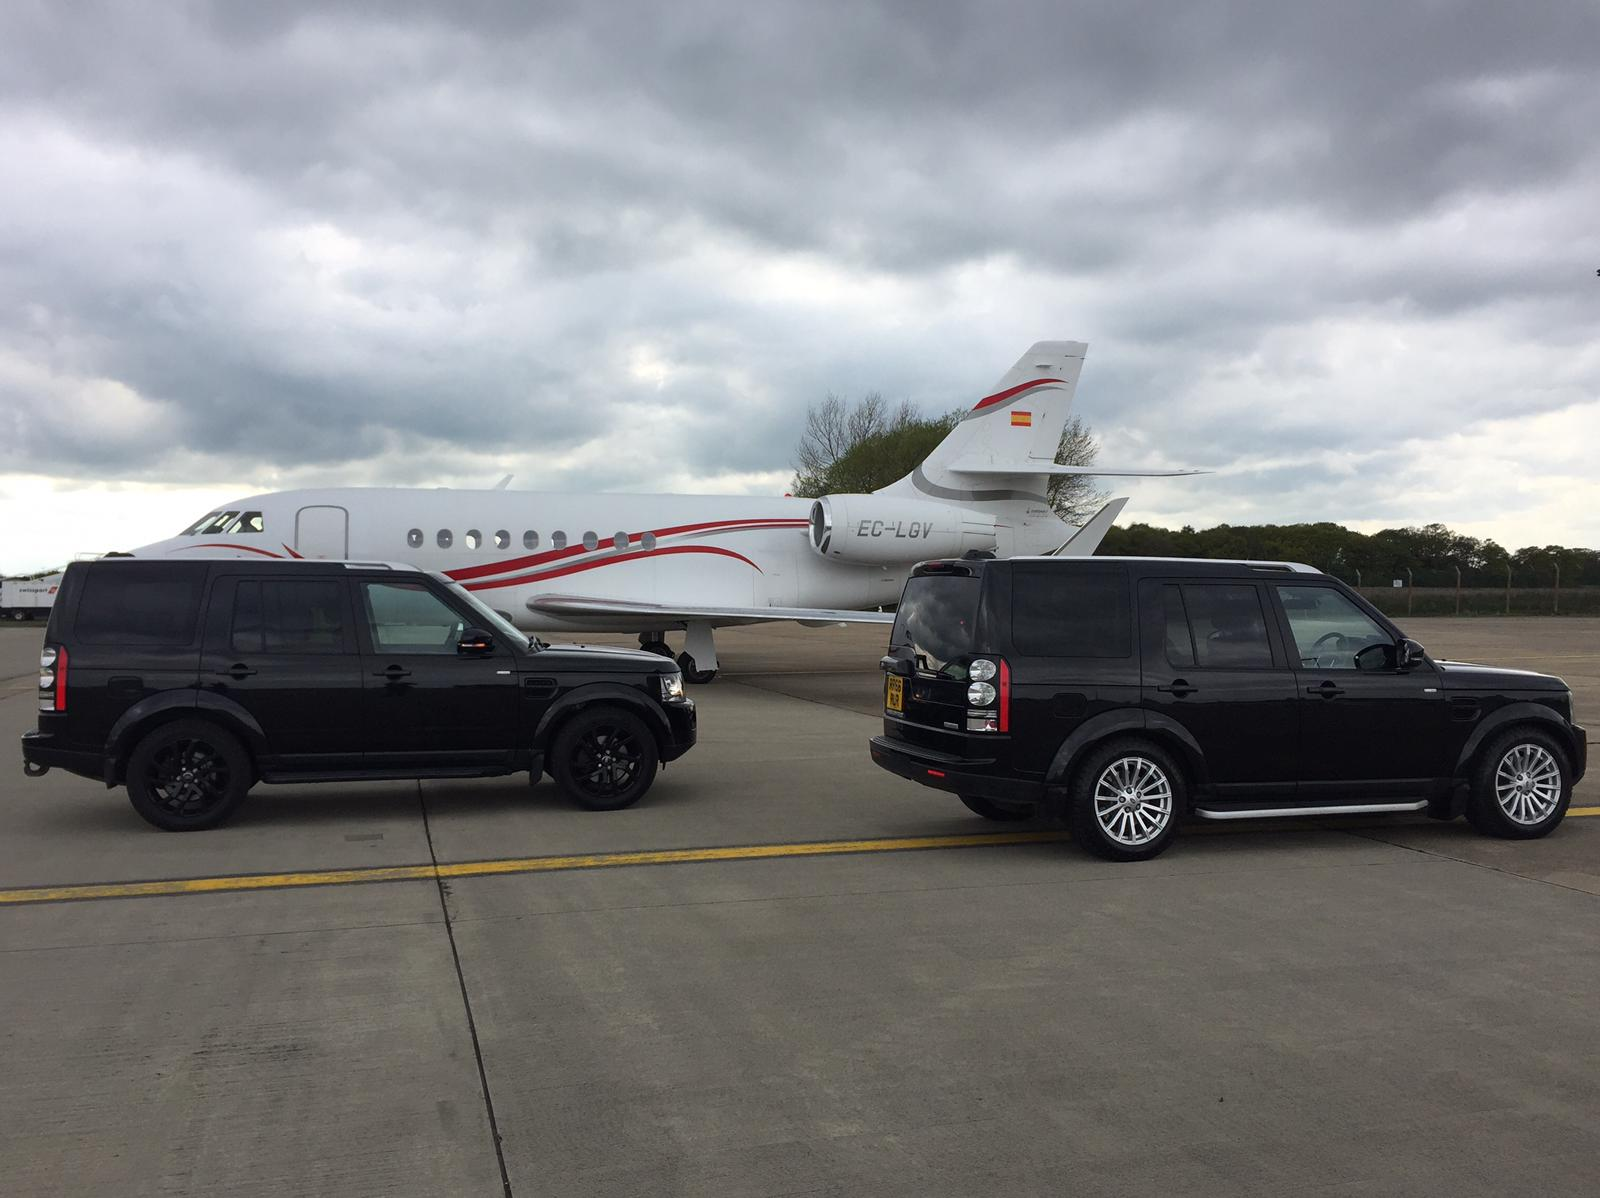 Two Landrover Discoveries next to Private Jet at Durham Airport